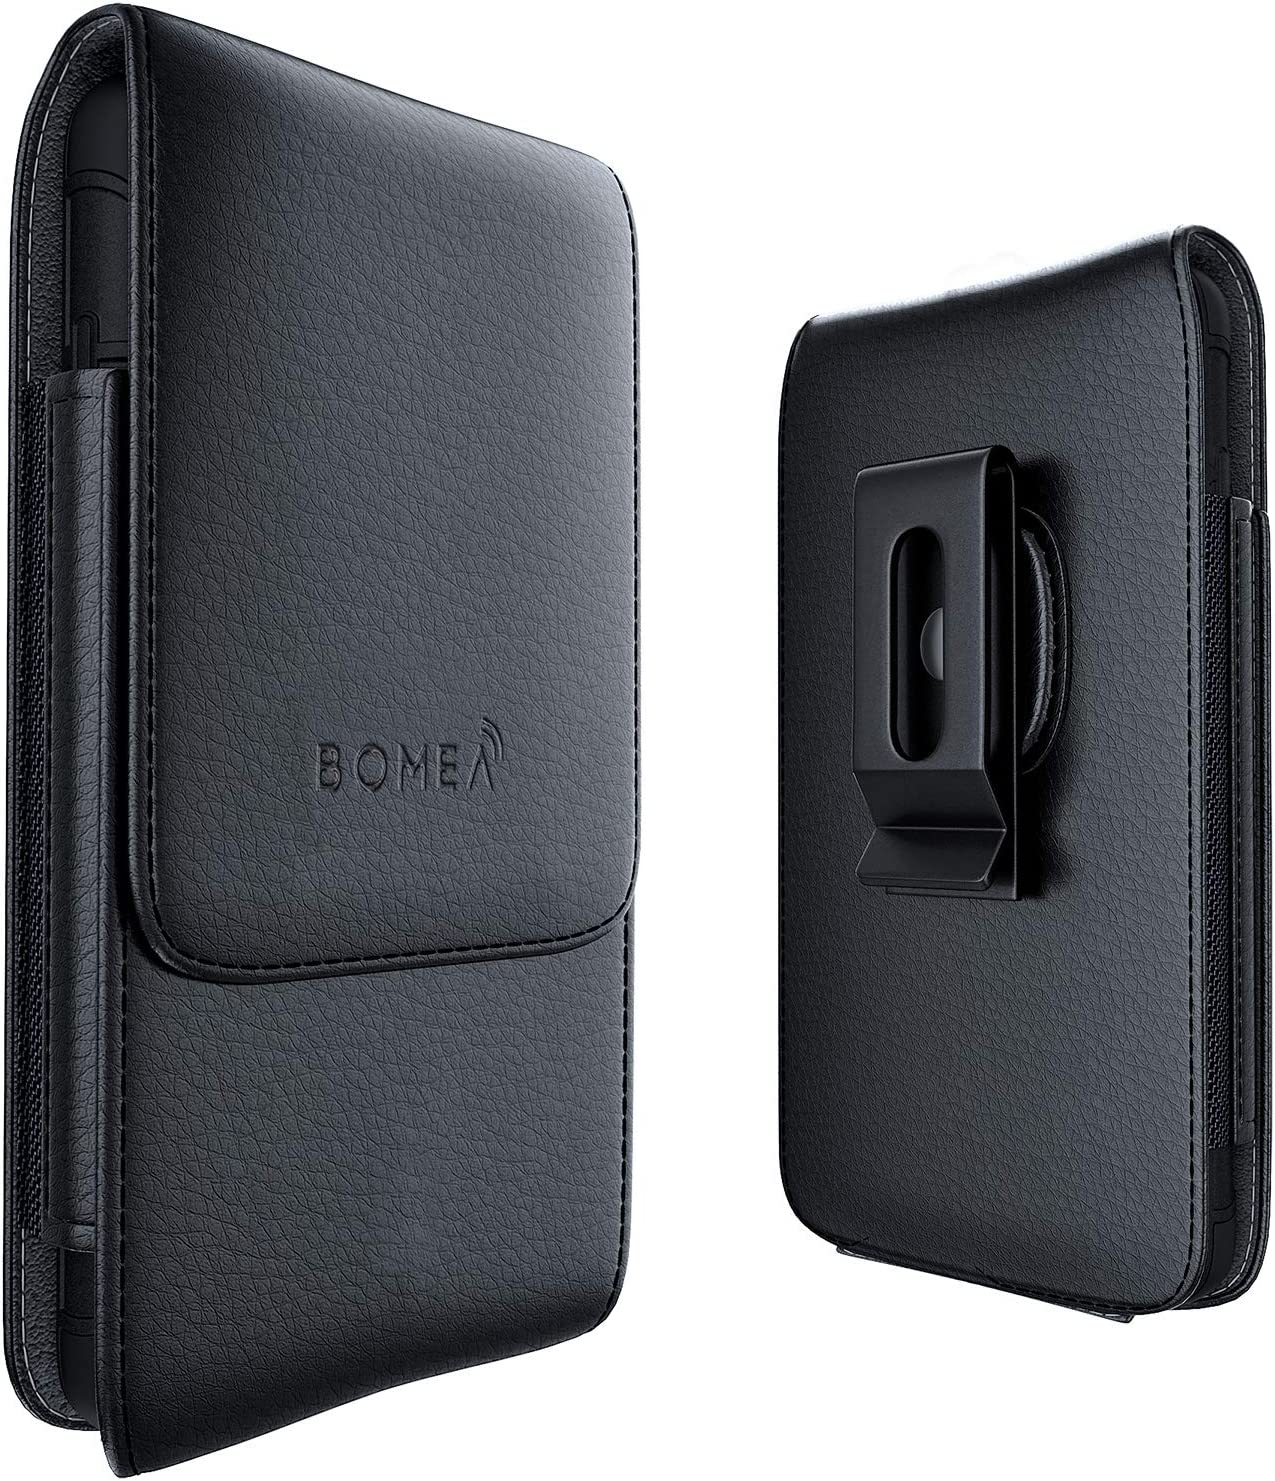 Bomea iPhone 6 Holster 6s 7 8 Cell Phone Pouch Belt Case with Clip Holster Cover Holder Carrying Sleeve with Swivel Clip for Apple iPhone 6/6S/7/8(Fits Phone with Other Case on) - Vertical Black